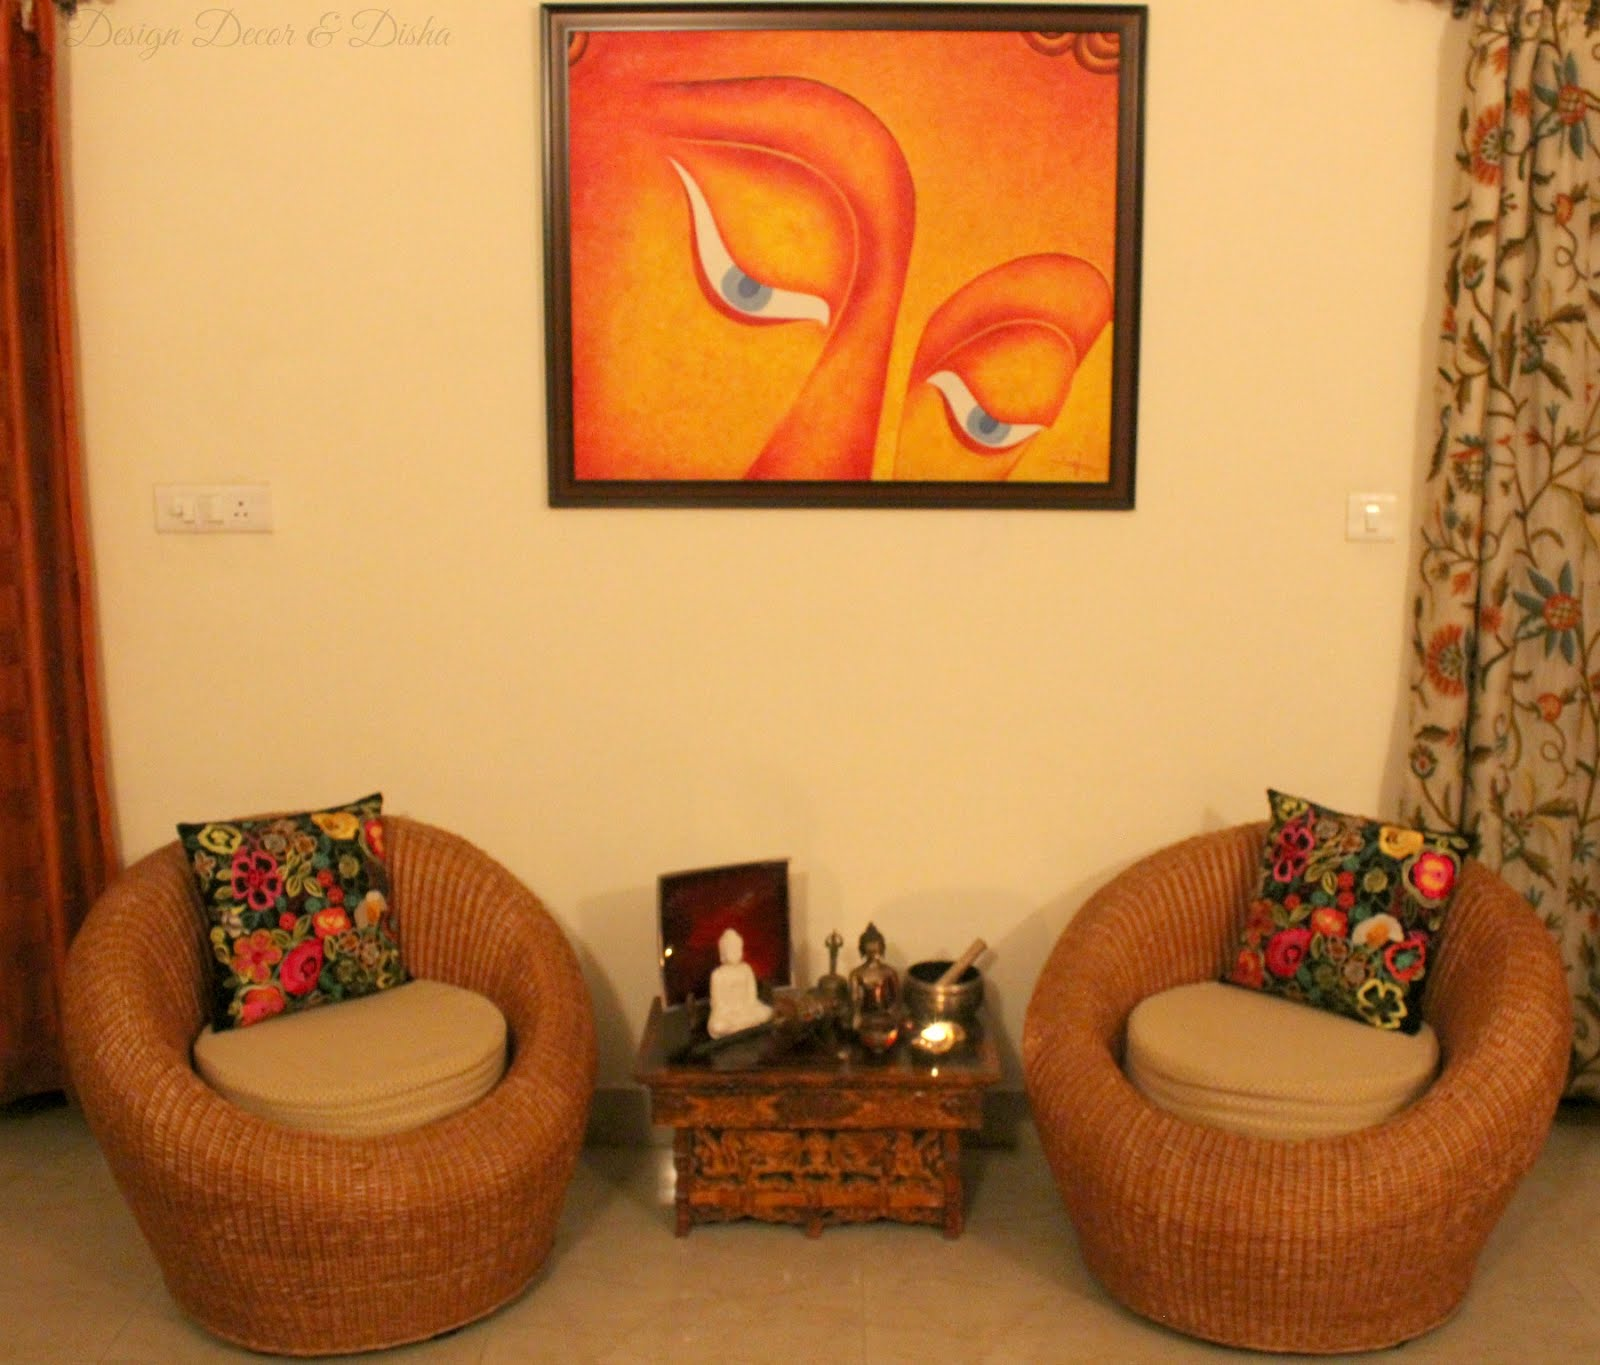 Design decor disha an indian design decor blog home for Design of decoration